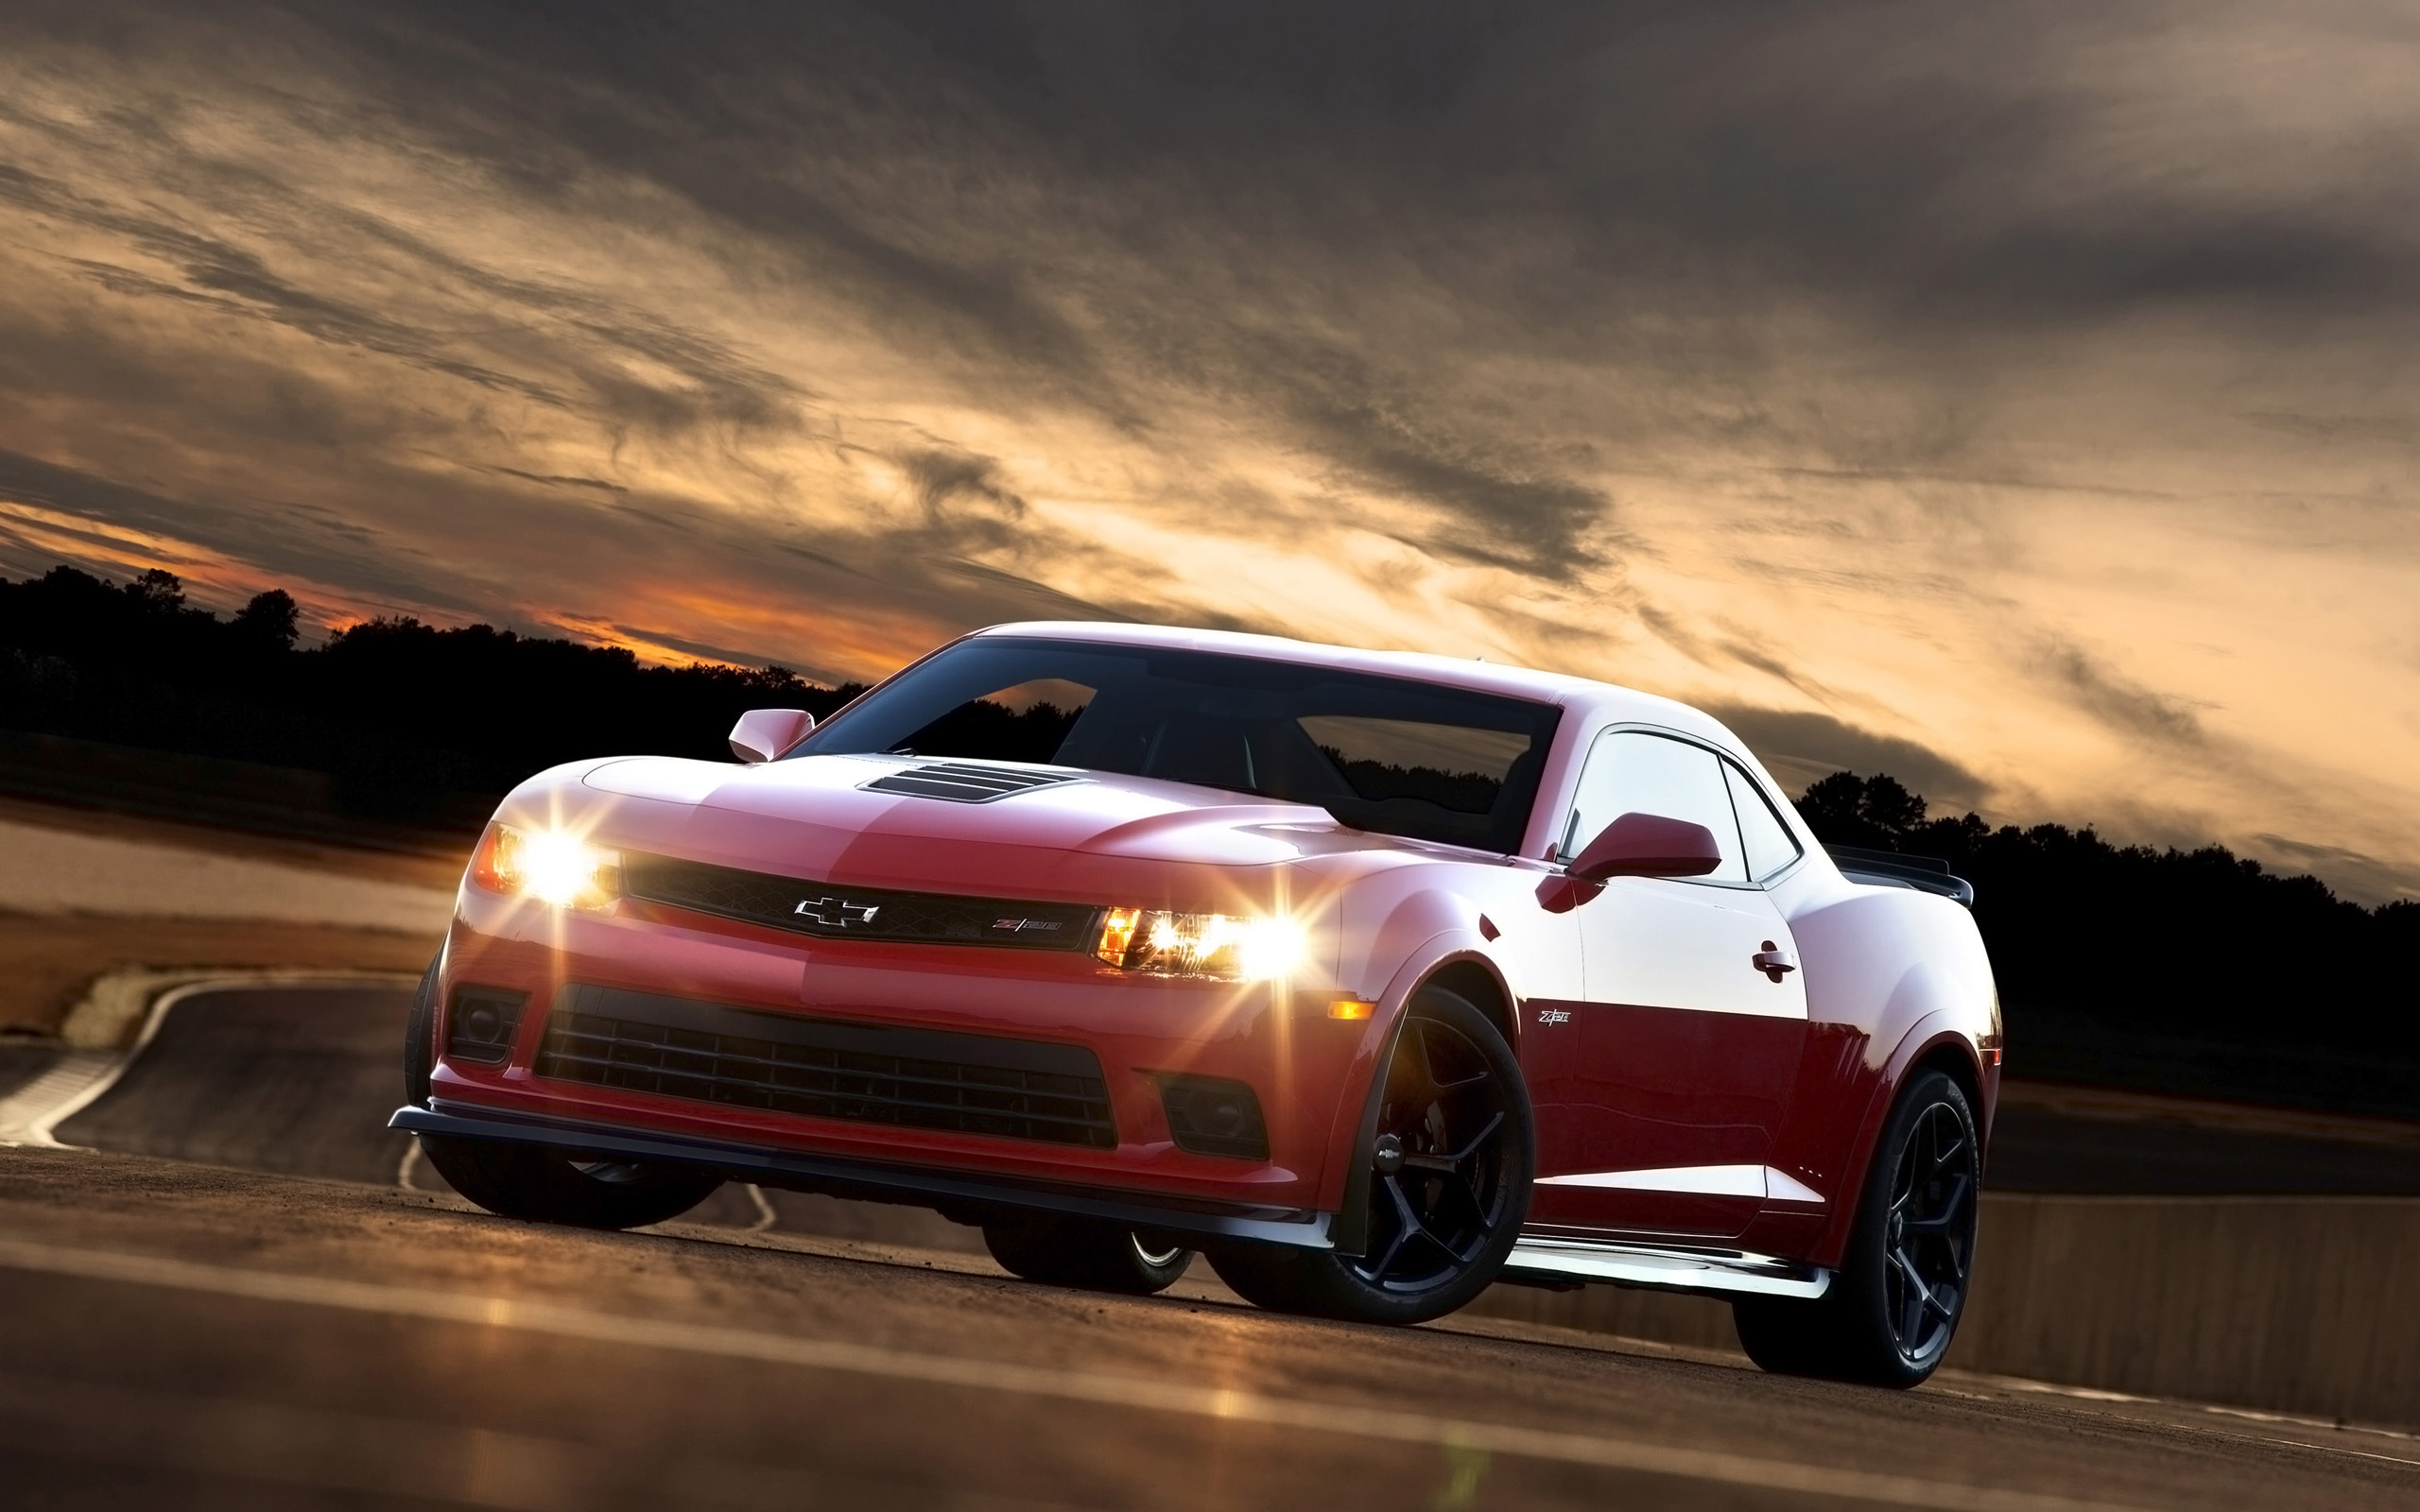 2015 Chevrolet Camaro Z28 Wallpaper HD Car Wallpapers 2560x1600